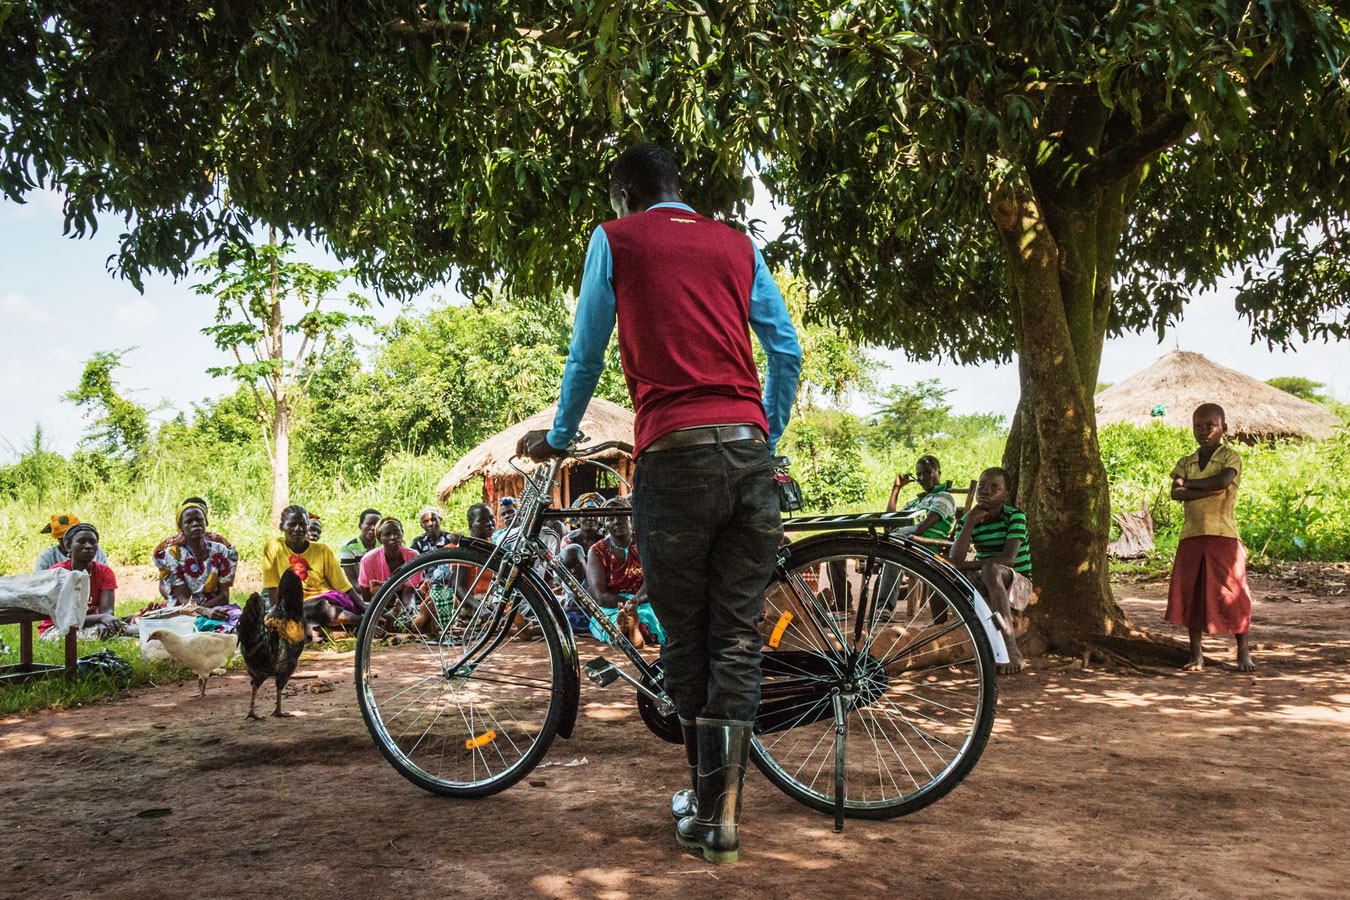 Bicycle Distributions, © Kevin Di Salvo, Uganda, Theme Winner: Building Sustainable Livelihoods, CGAP Photo and Video Contest